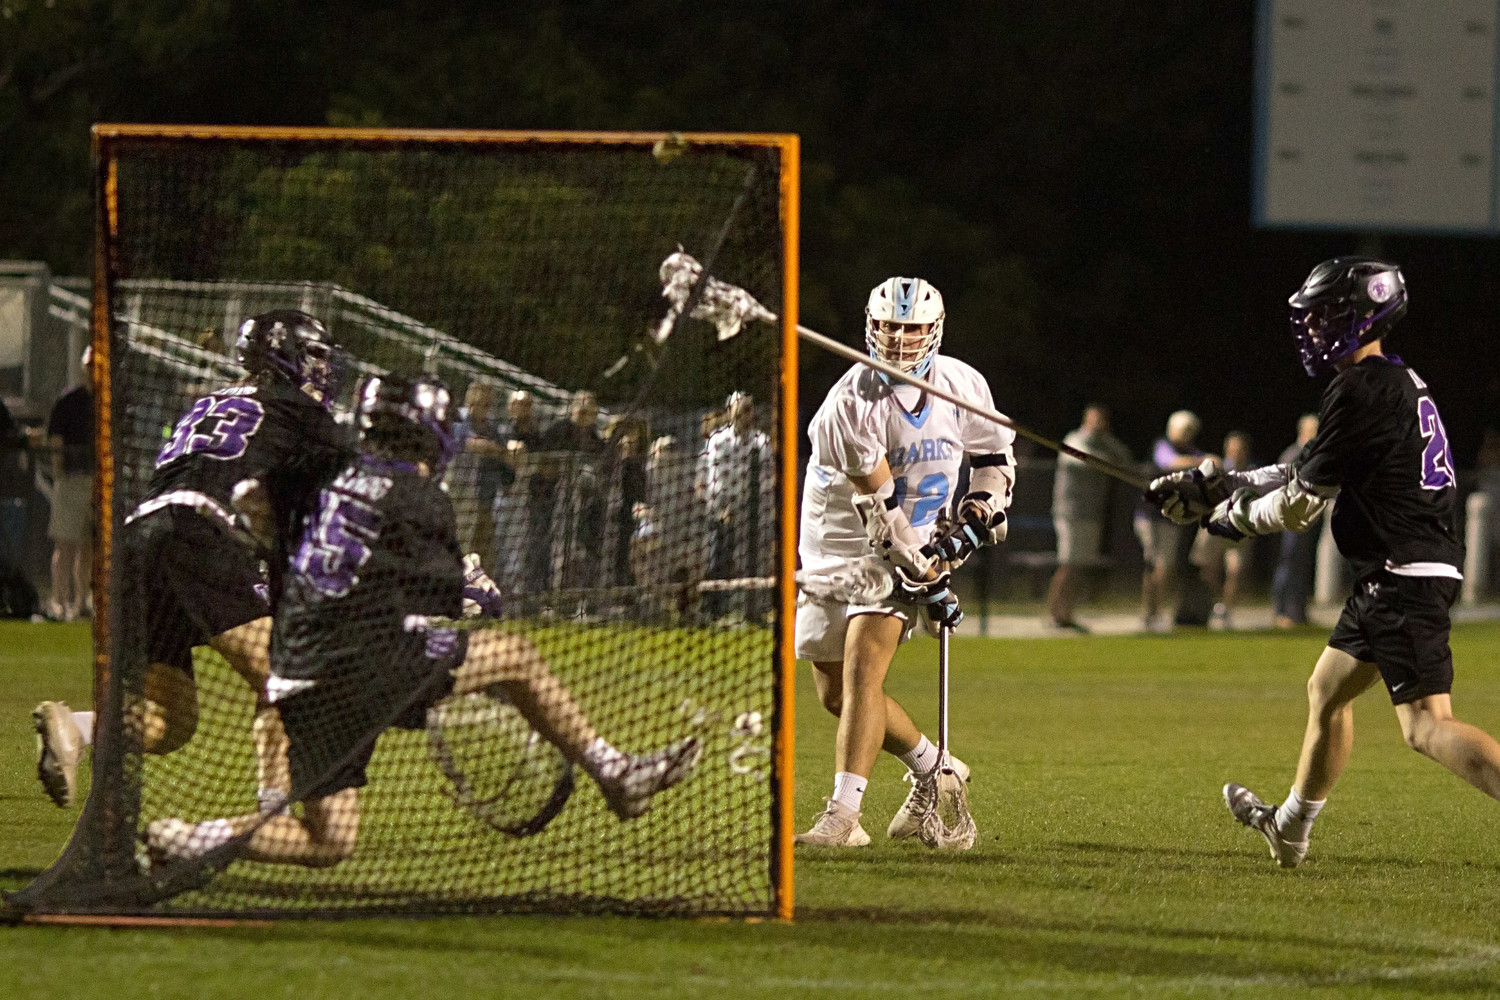 Walker Azzaro of the Sharks fires a low shot that is blocked by the Gonzaga goalie.